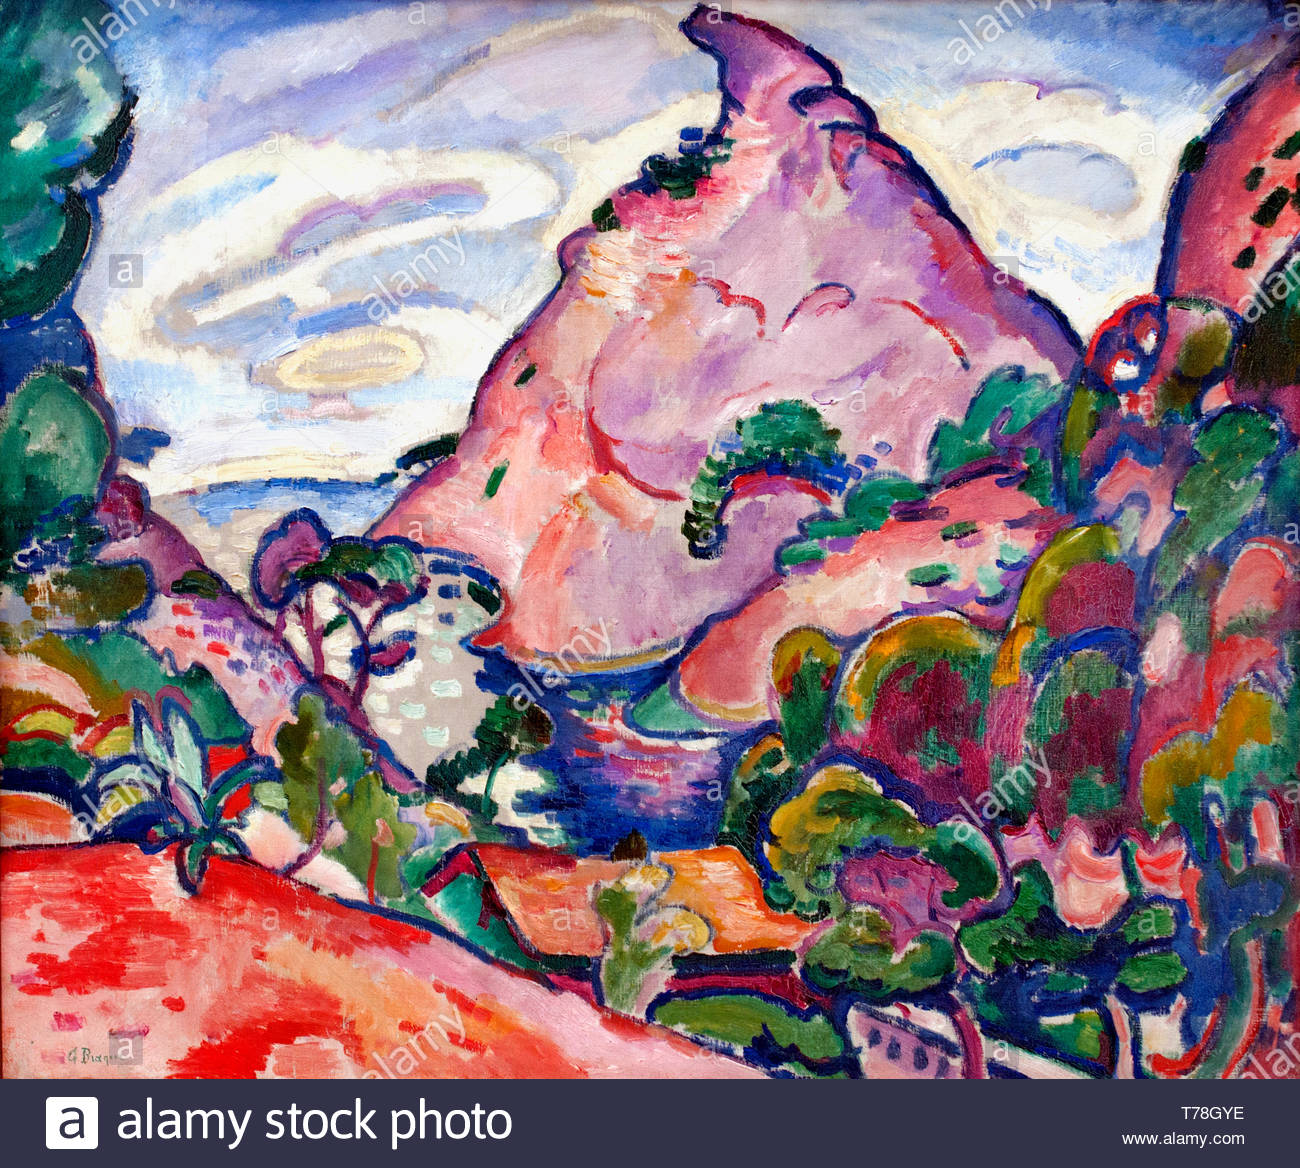 La Calanque - Temps Gris 1907  Georges Braque born in 1882 –  French painter and sculptor. (Fauvism - Cubism) France - Stock Image